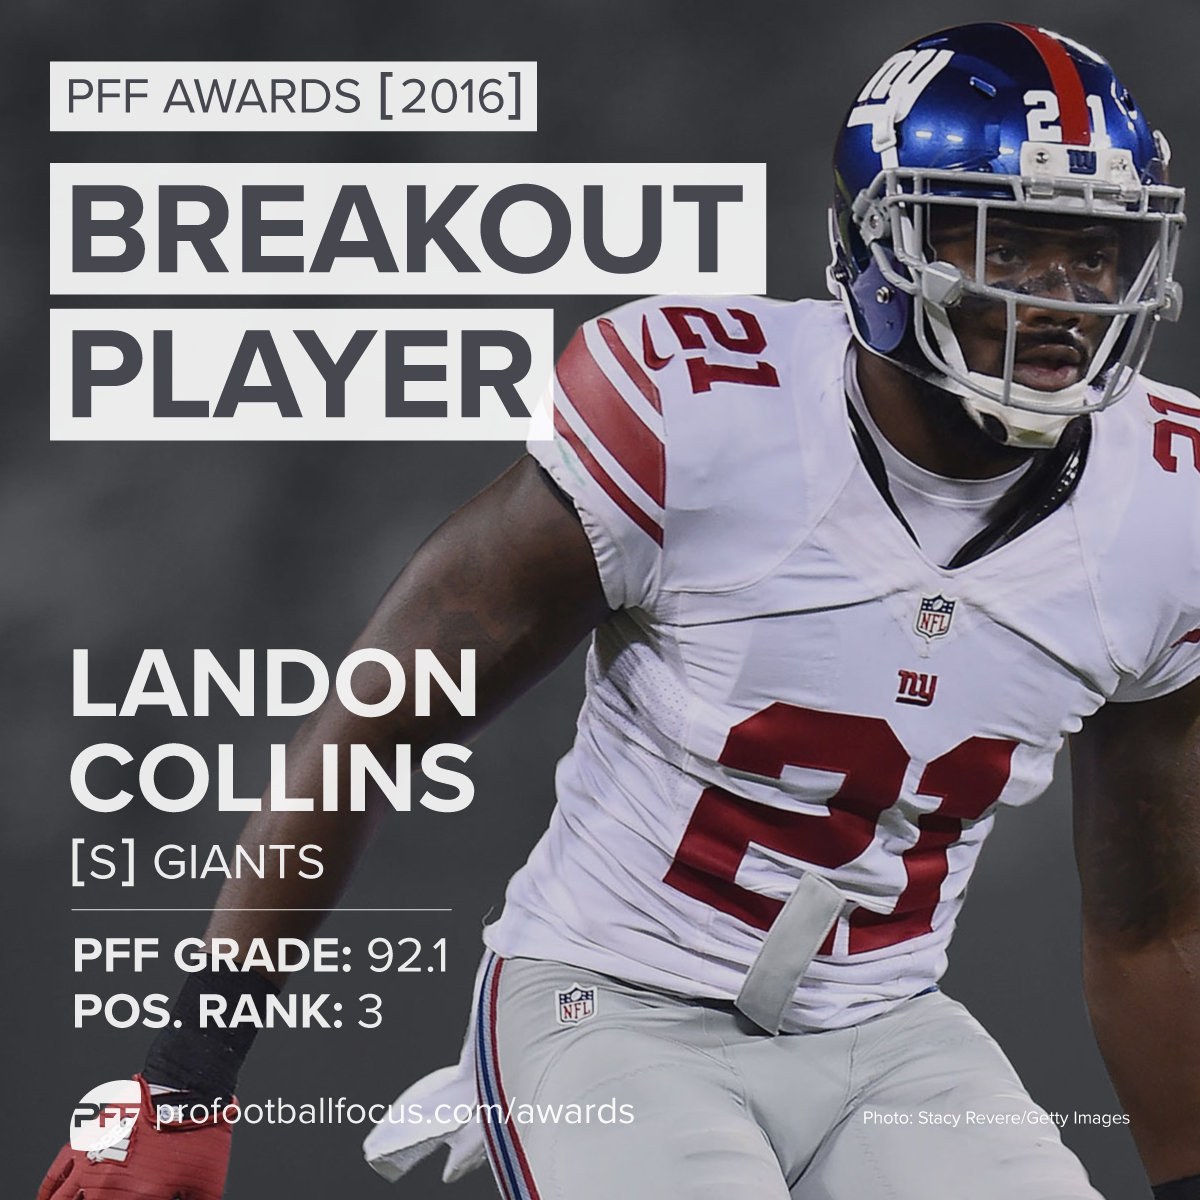 PFF 2016 Breakout Player: Landon Collins